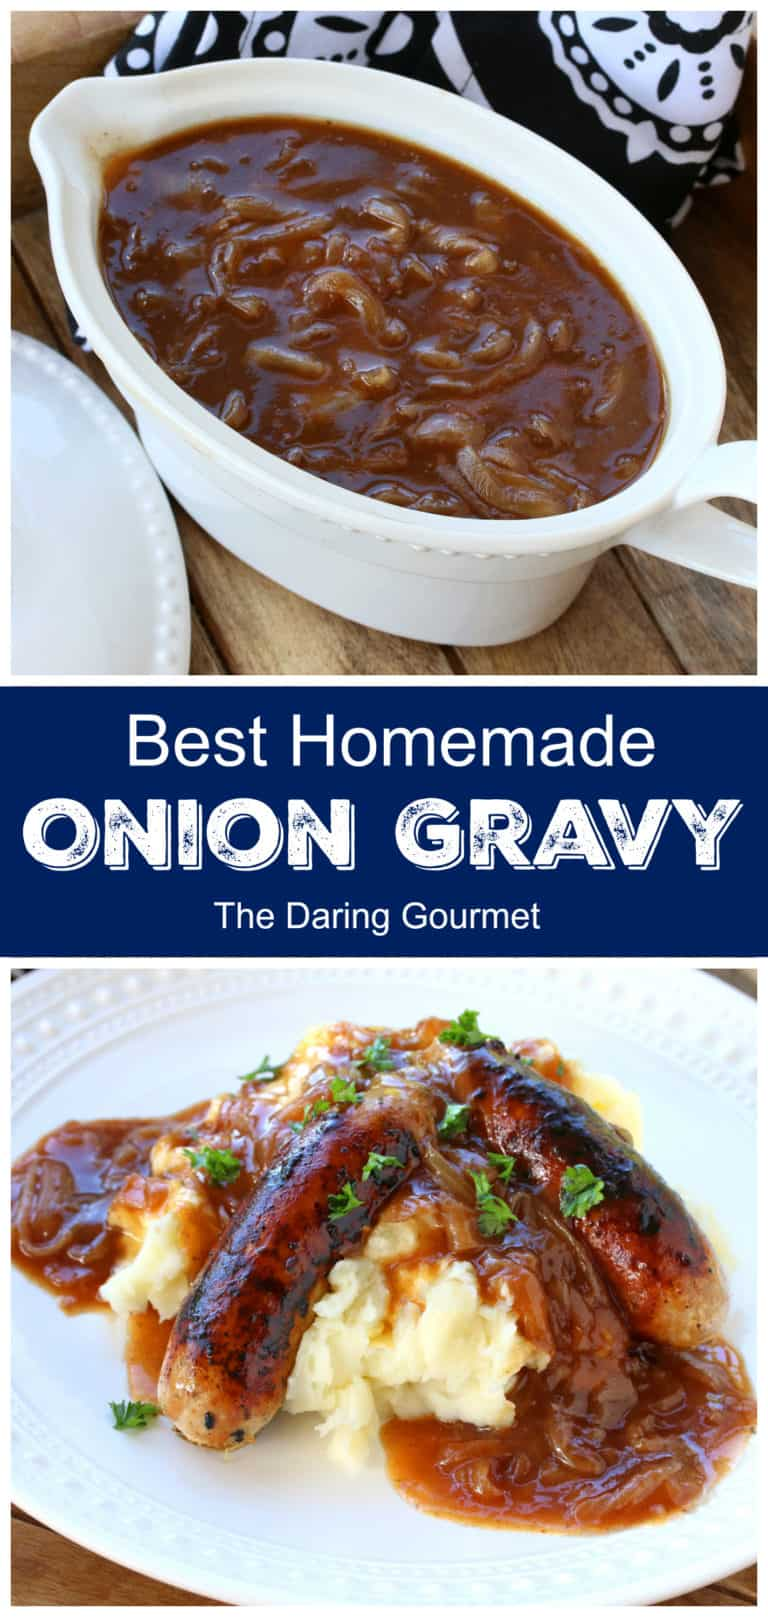 onion gravy recipe best homemade from scratch British English bangers and mash